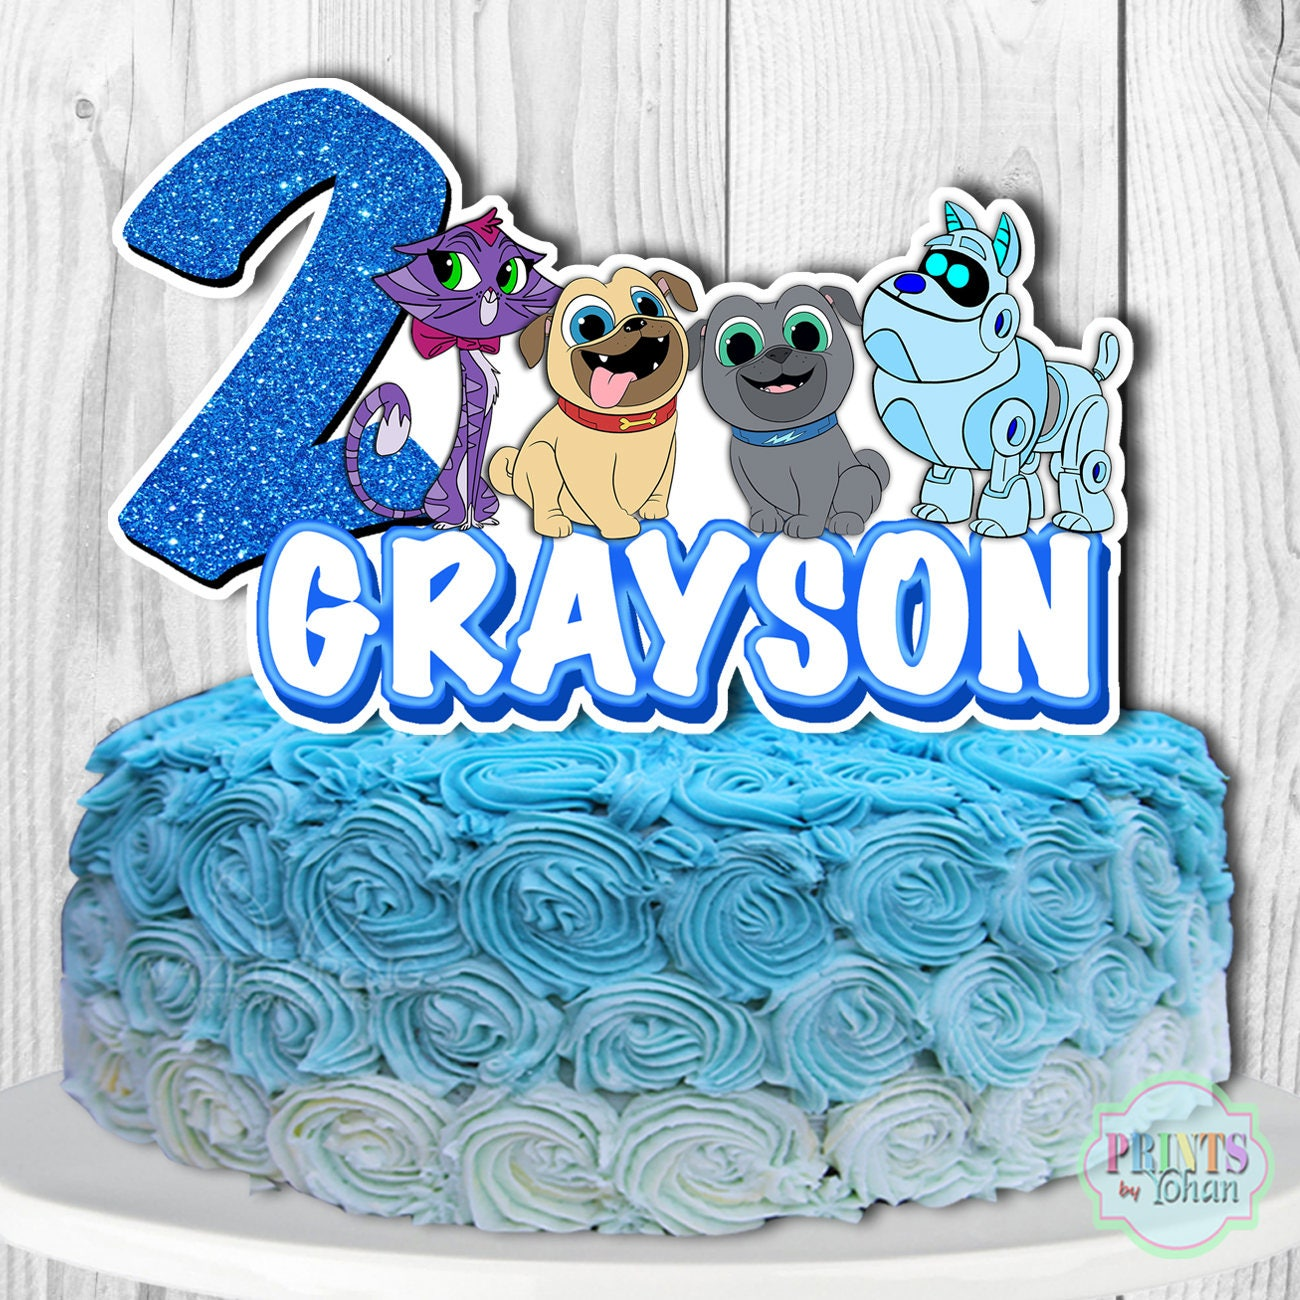 Puppy Dog Pals Cake Topper Puppy Dog Pals Cake Decorations ...